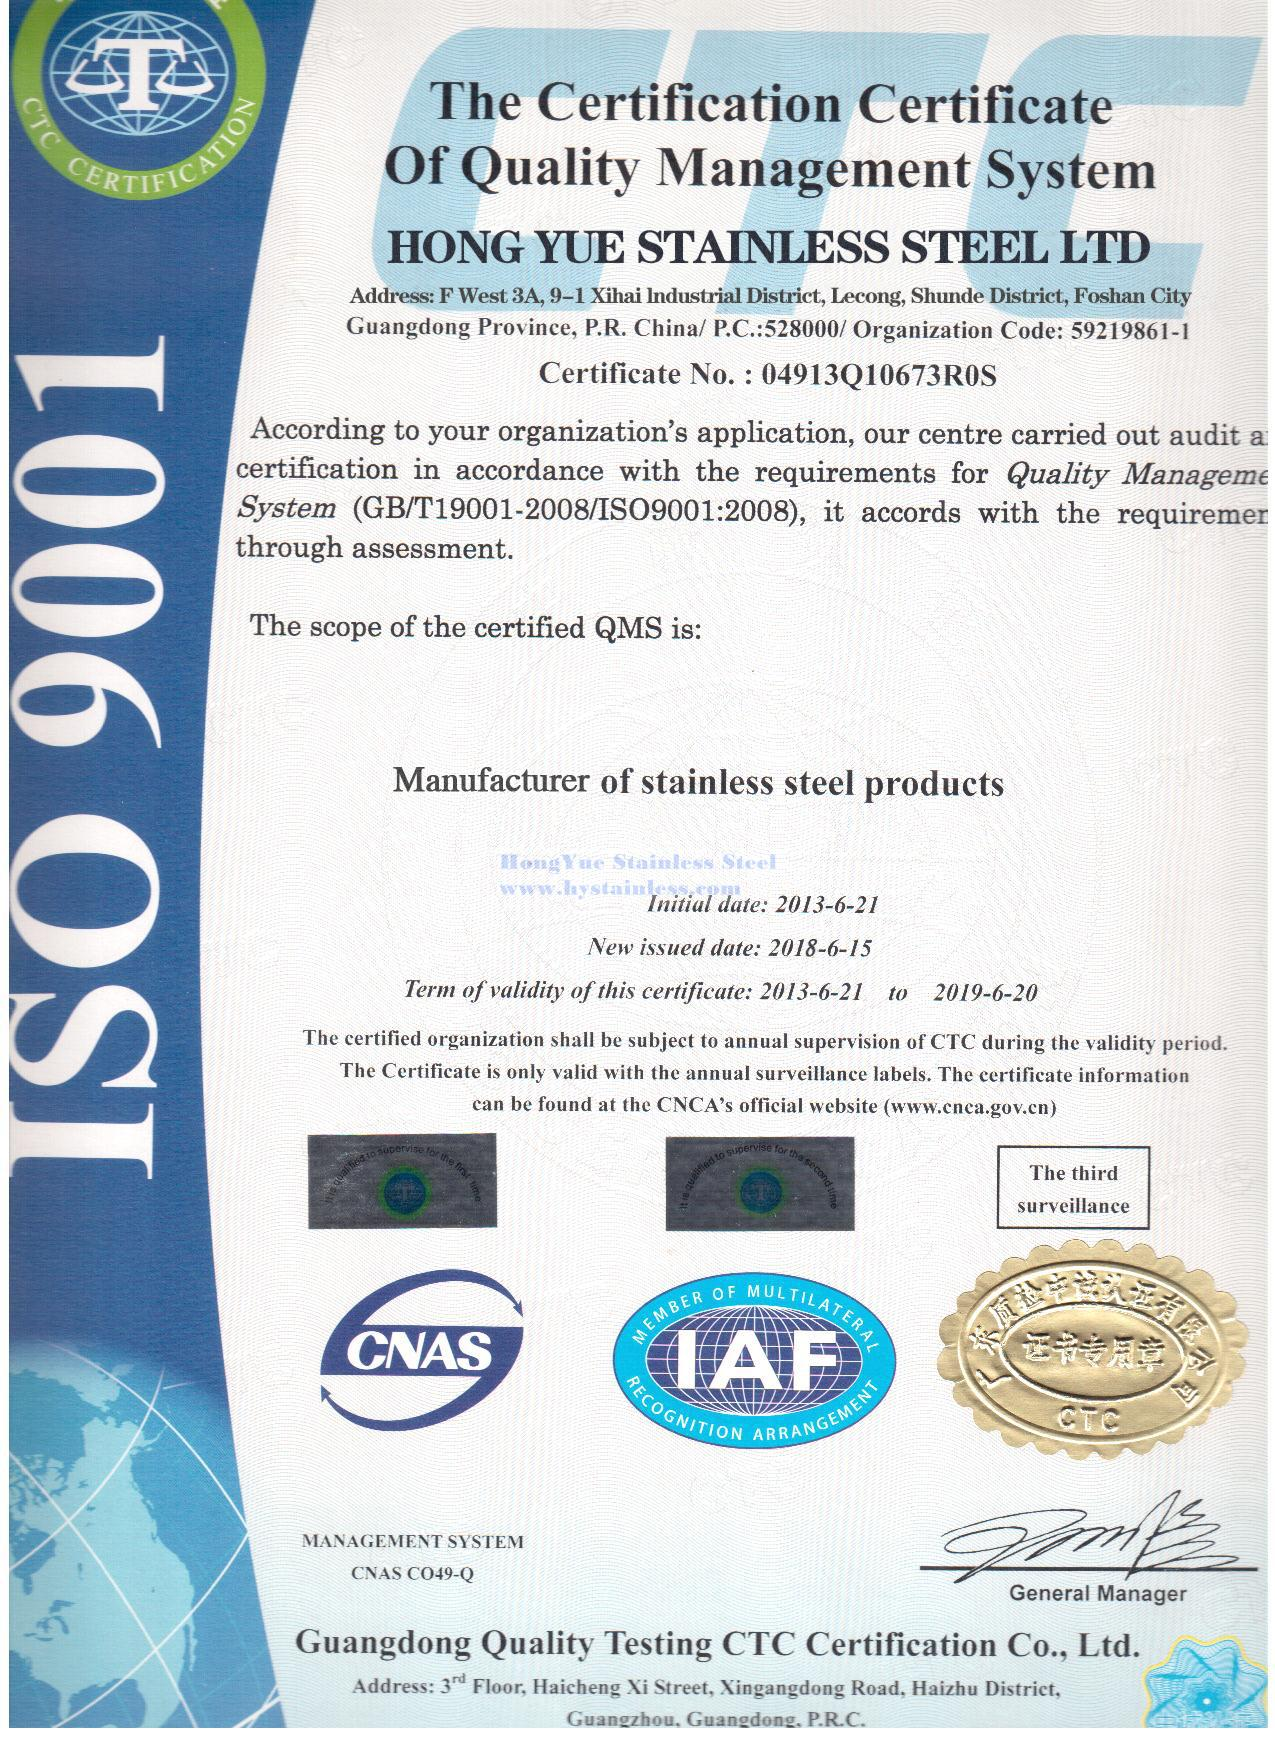 ISO 9001 - <a href=http://www.hystainless.com target='_blank'><a href=http://www.hystainless.com target='_blank'>Hong Yue Stainless Steel</a></a>